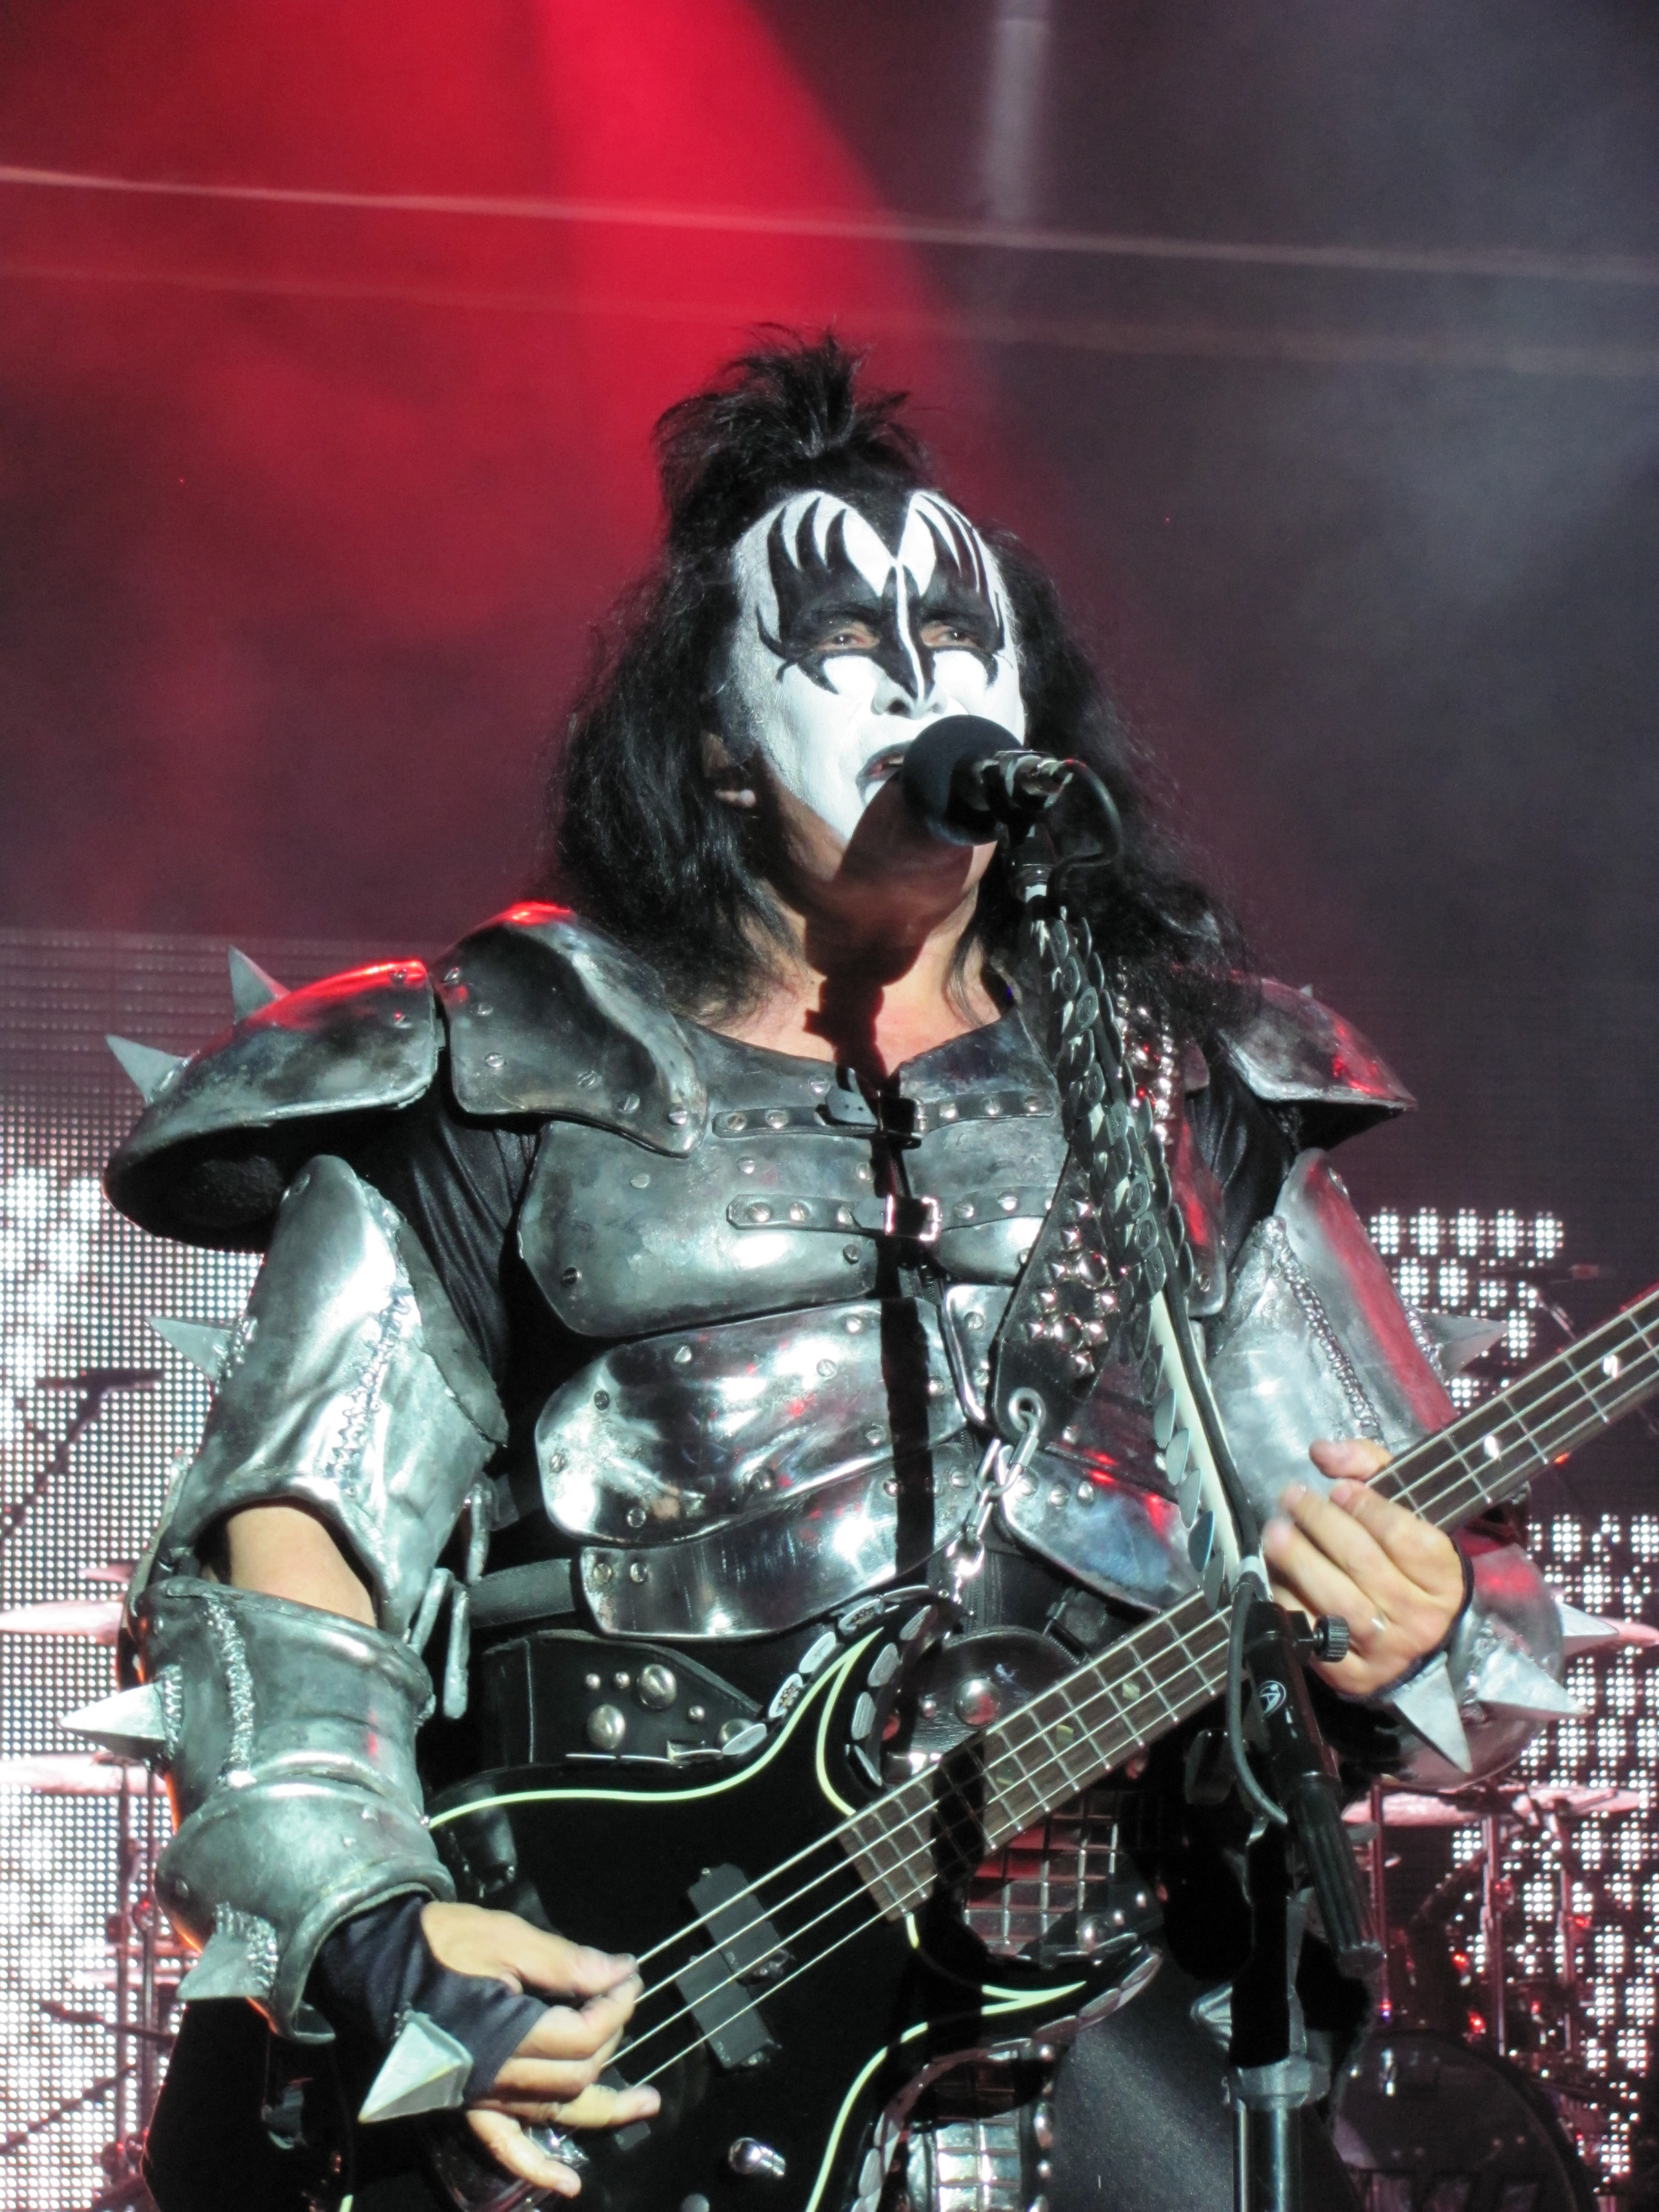 Kiss bassist Gene Simmons performing on the Kiss Kruise in 2011.